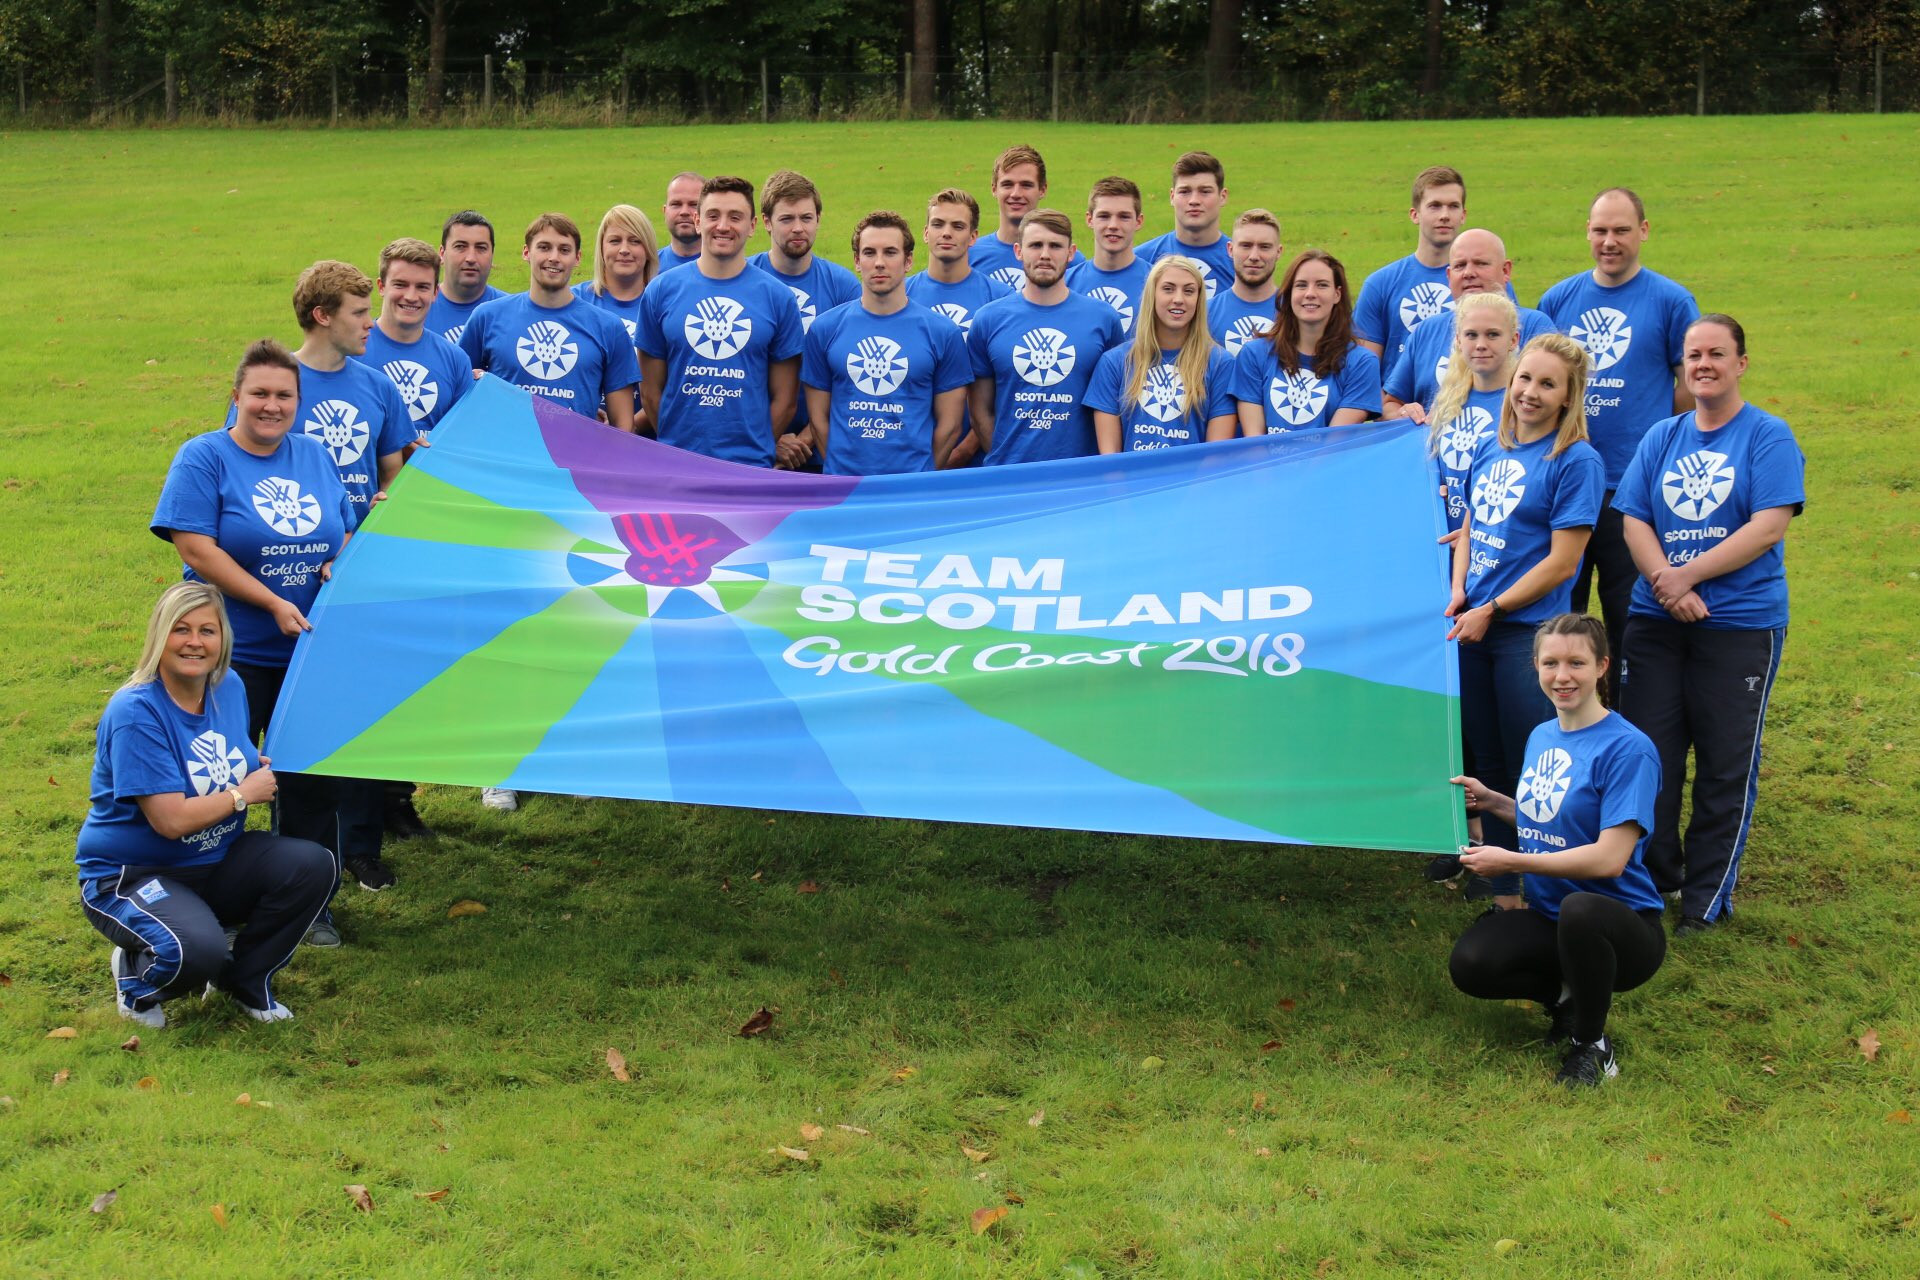 Scotland name 31 swimmers and bowlers to compete at Gold Coast 2018